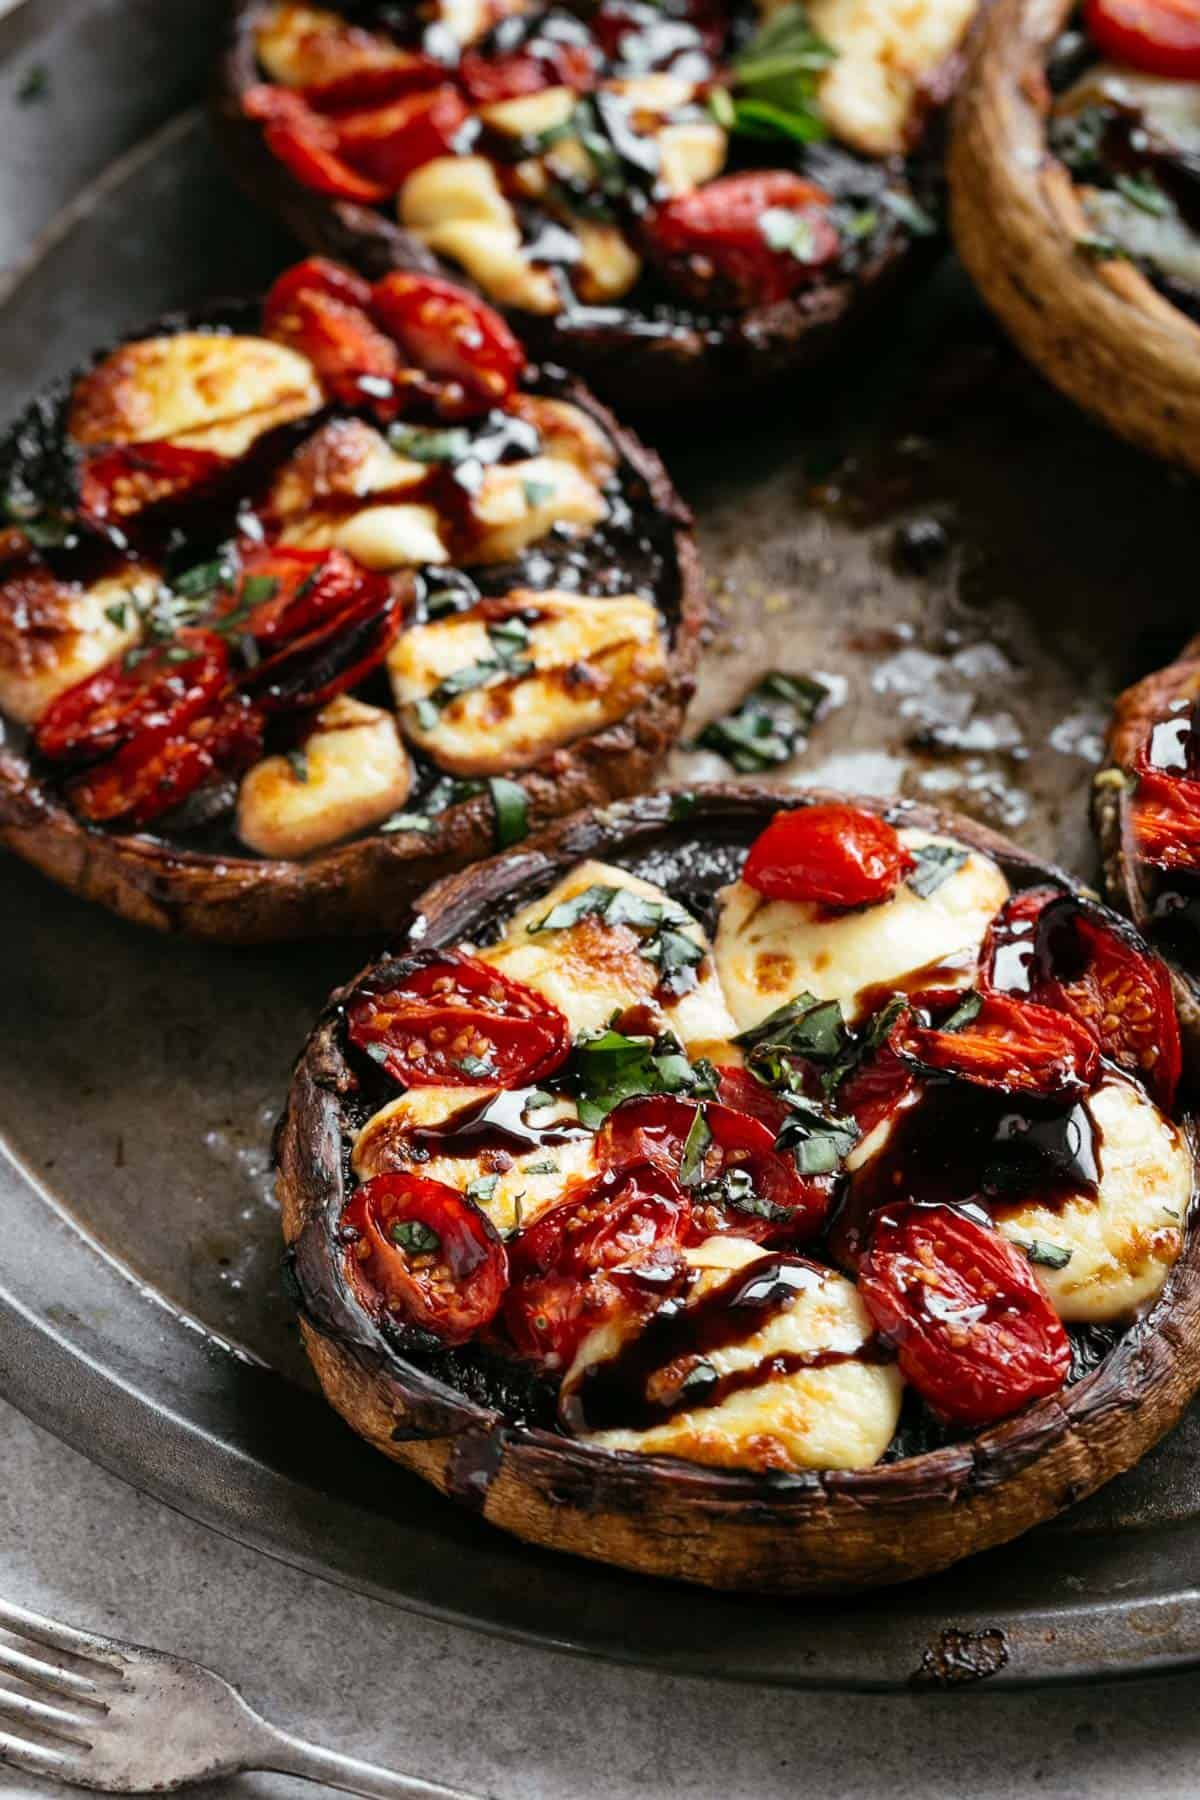 Caprese Stuffed Garlic Butter Portobellos! Garlic butter portobello mushrooms stuffed and grilled with fresh mozzarella cheese, grape tomato slices and drizzled with a rich balsamic glaze! Low carb, healthy and perfect to enjoy for lunch, dinner or as a filling snack!